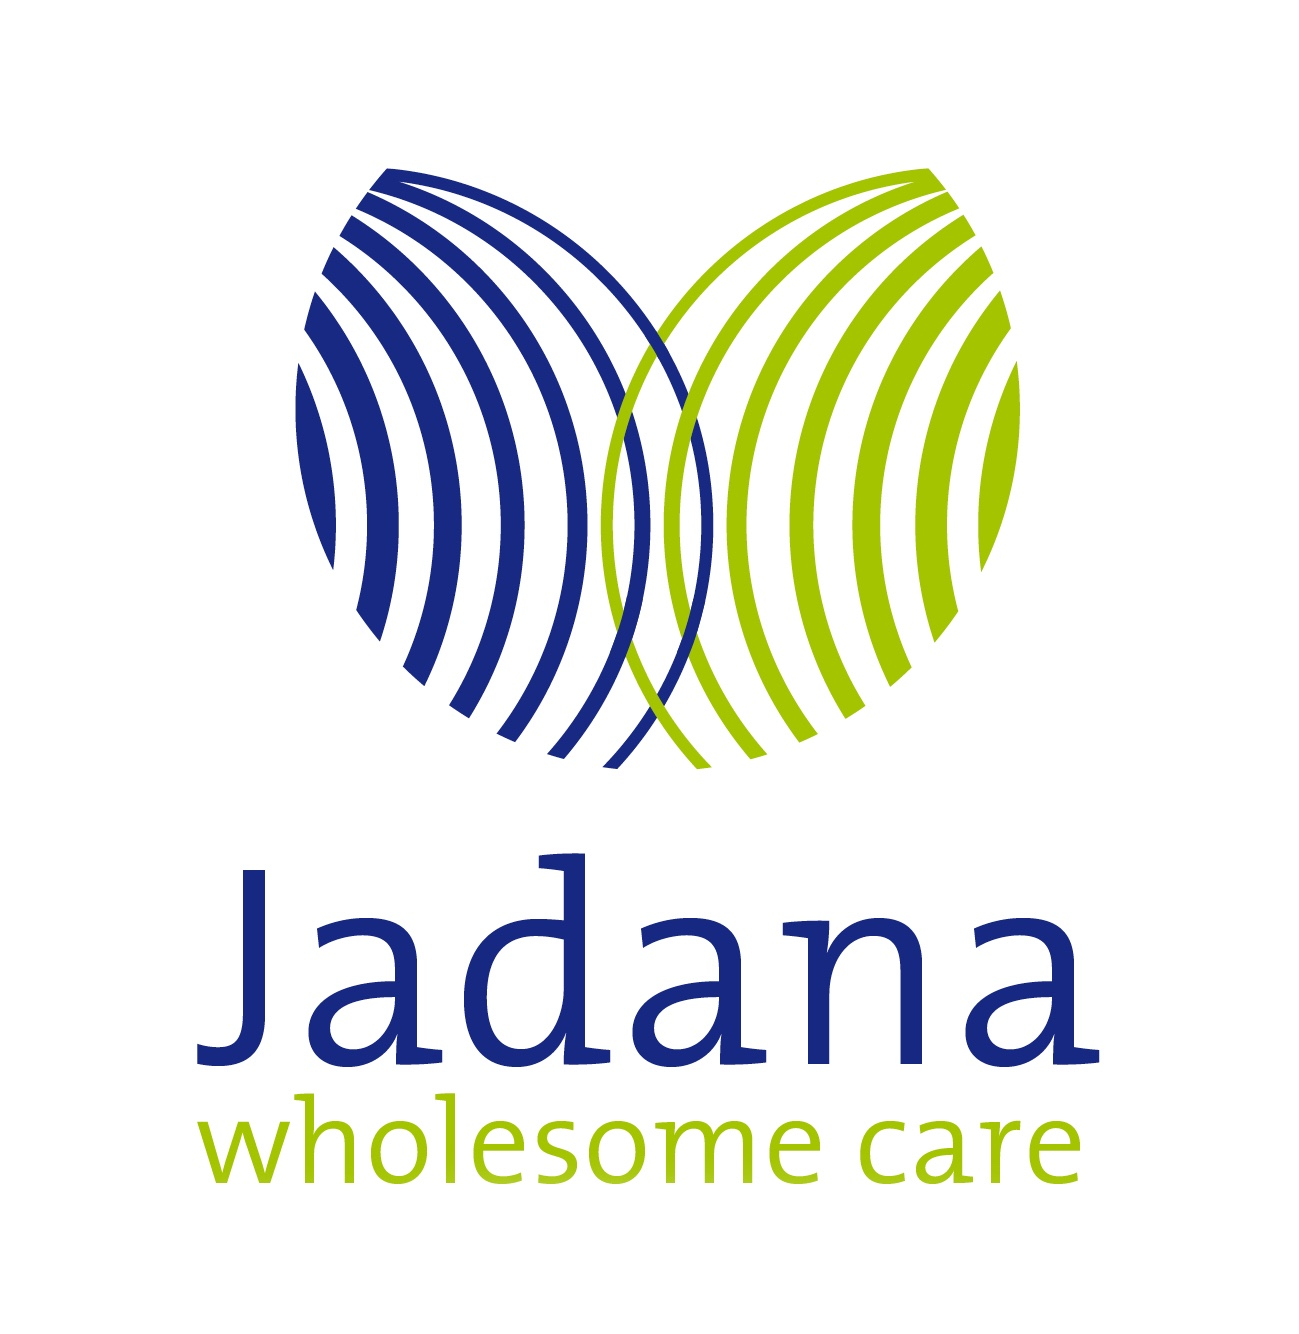 Stichting Jadana Wholesome Care